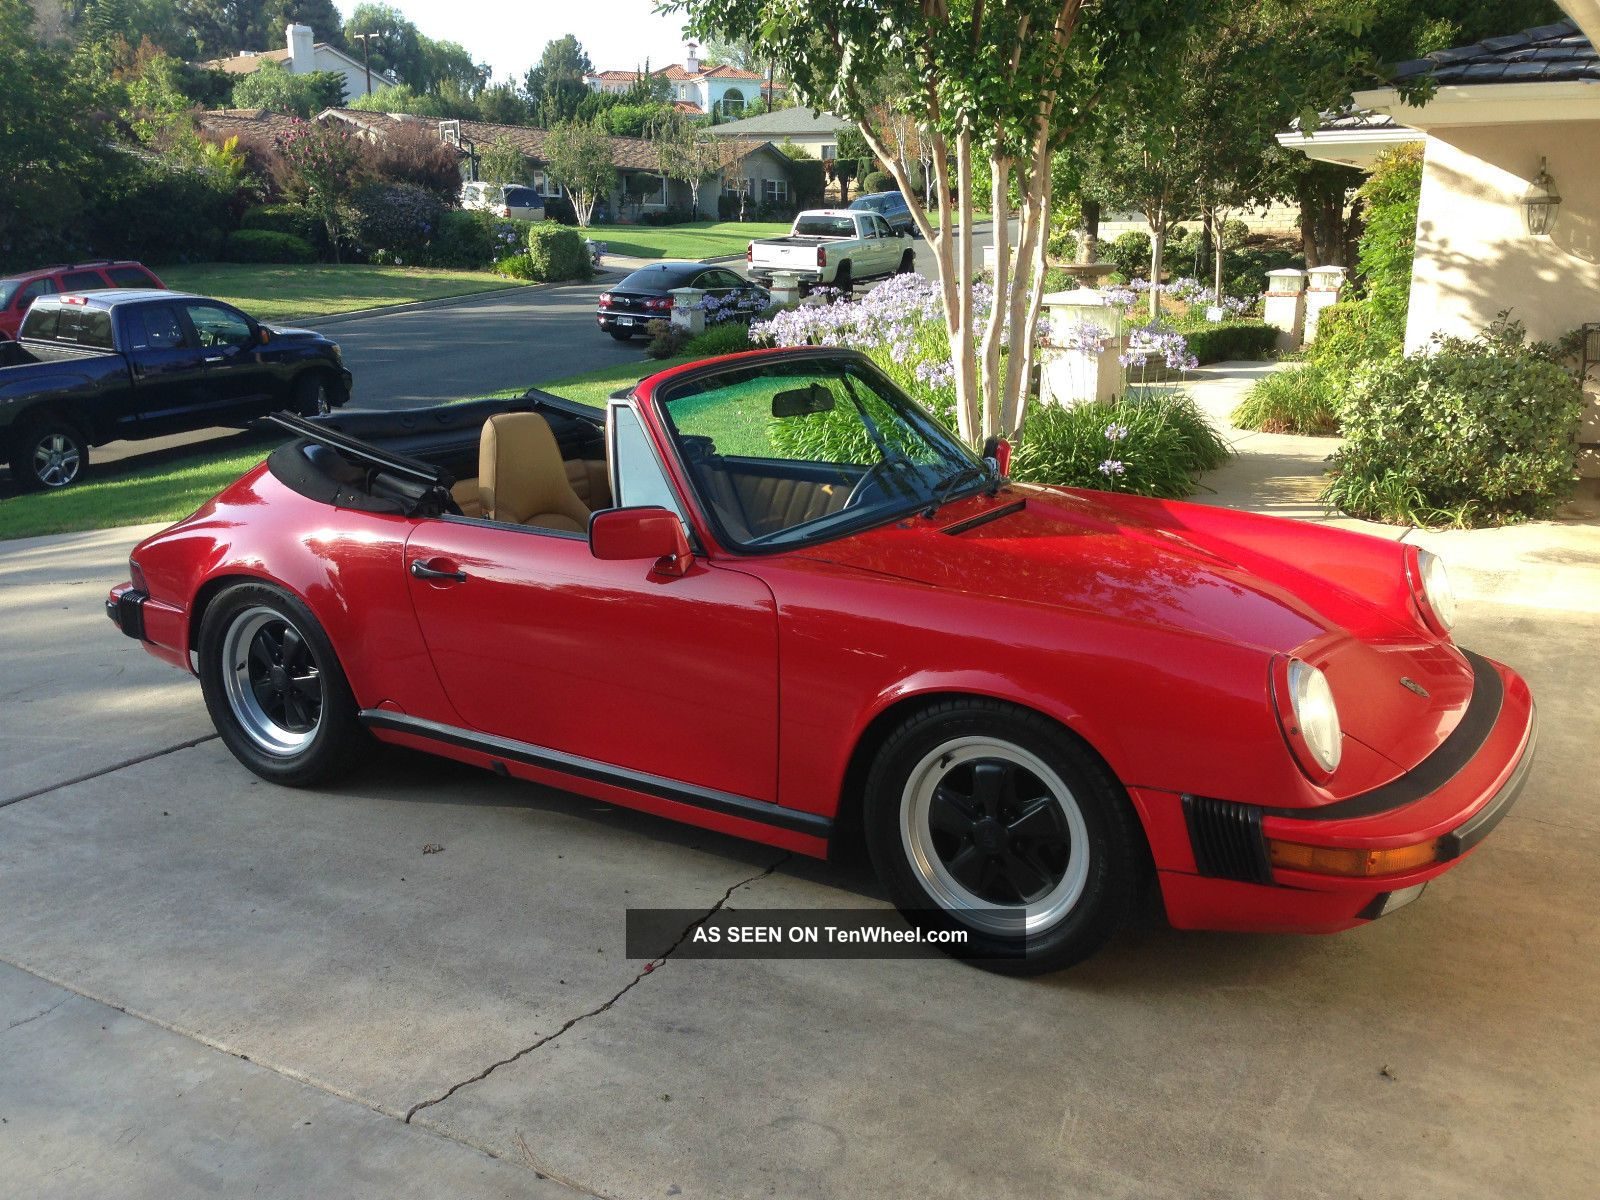 1988 Porsche 911 Carrera Cabriolet 911 photo